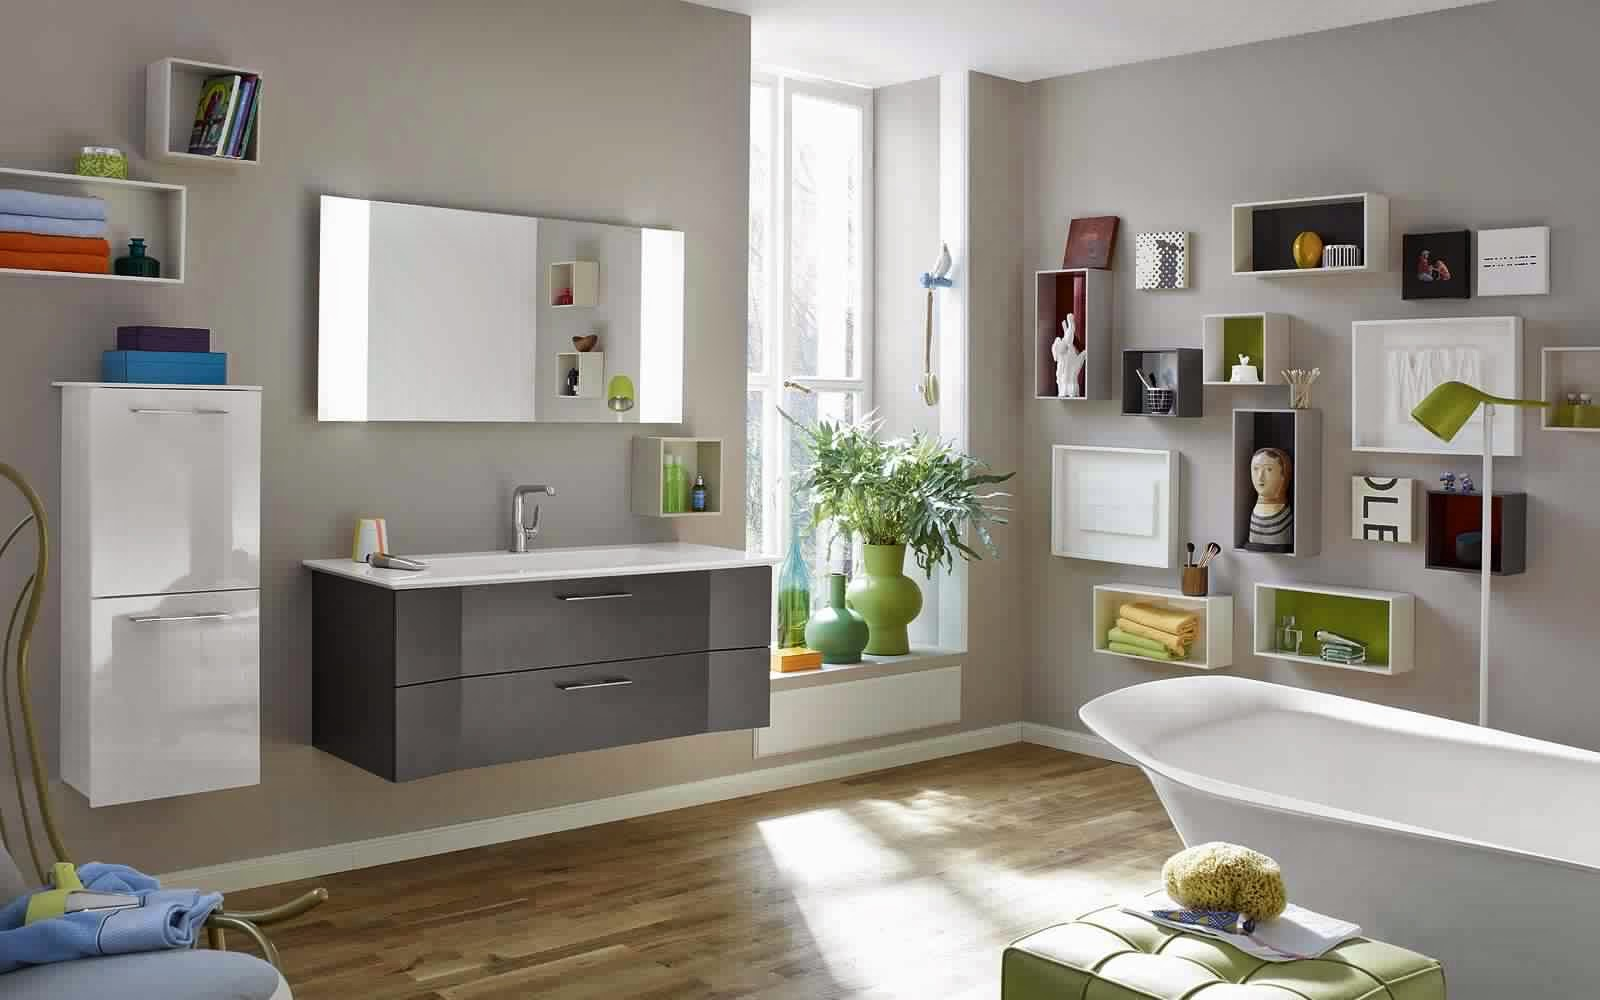 meuble salle de bain gris meuble d coration maison. Black Bedroom Furniture Sets. Home Design Ideas